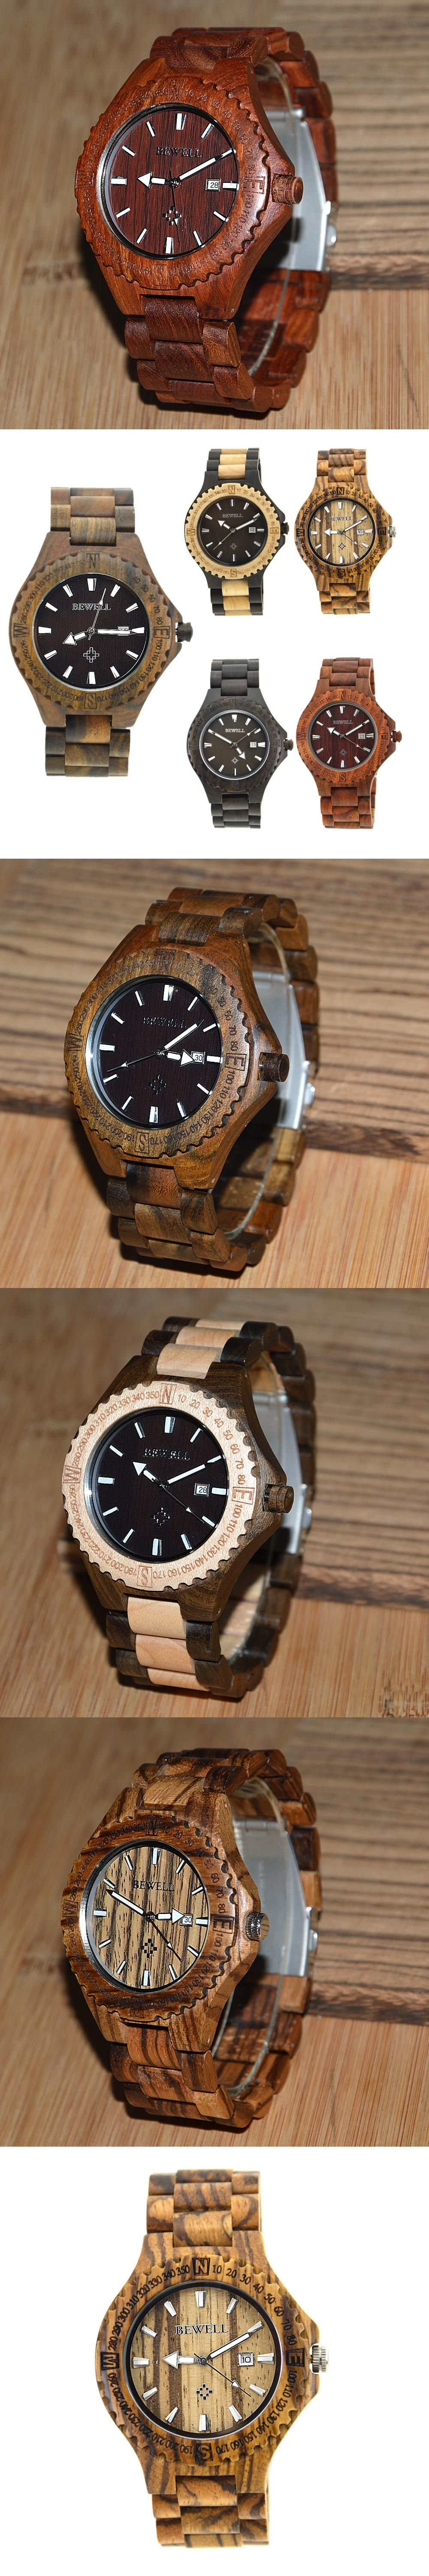 2016 New Brand BEWELL Handmade Sandalwood Watch Casual Calendar Wood Watches for Man Gift Items with Box 023A